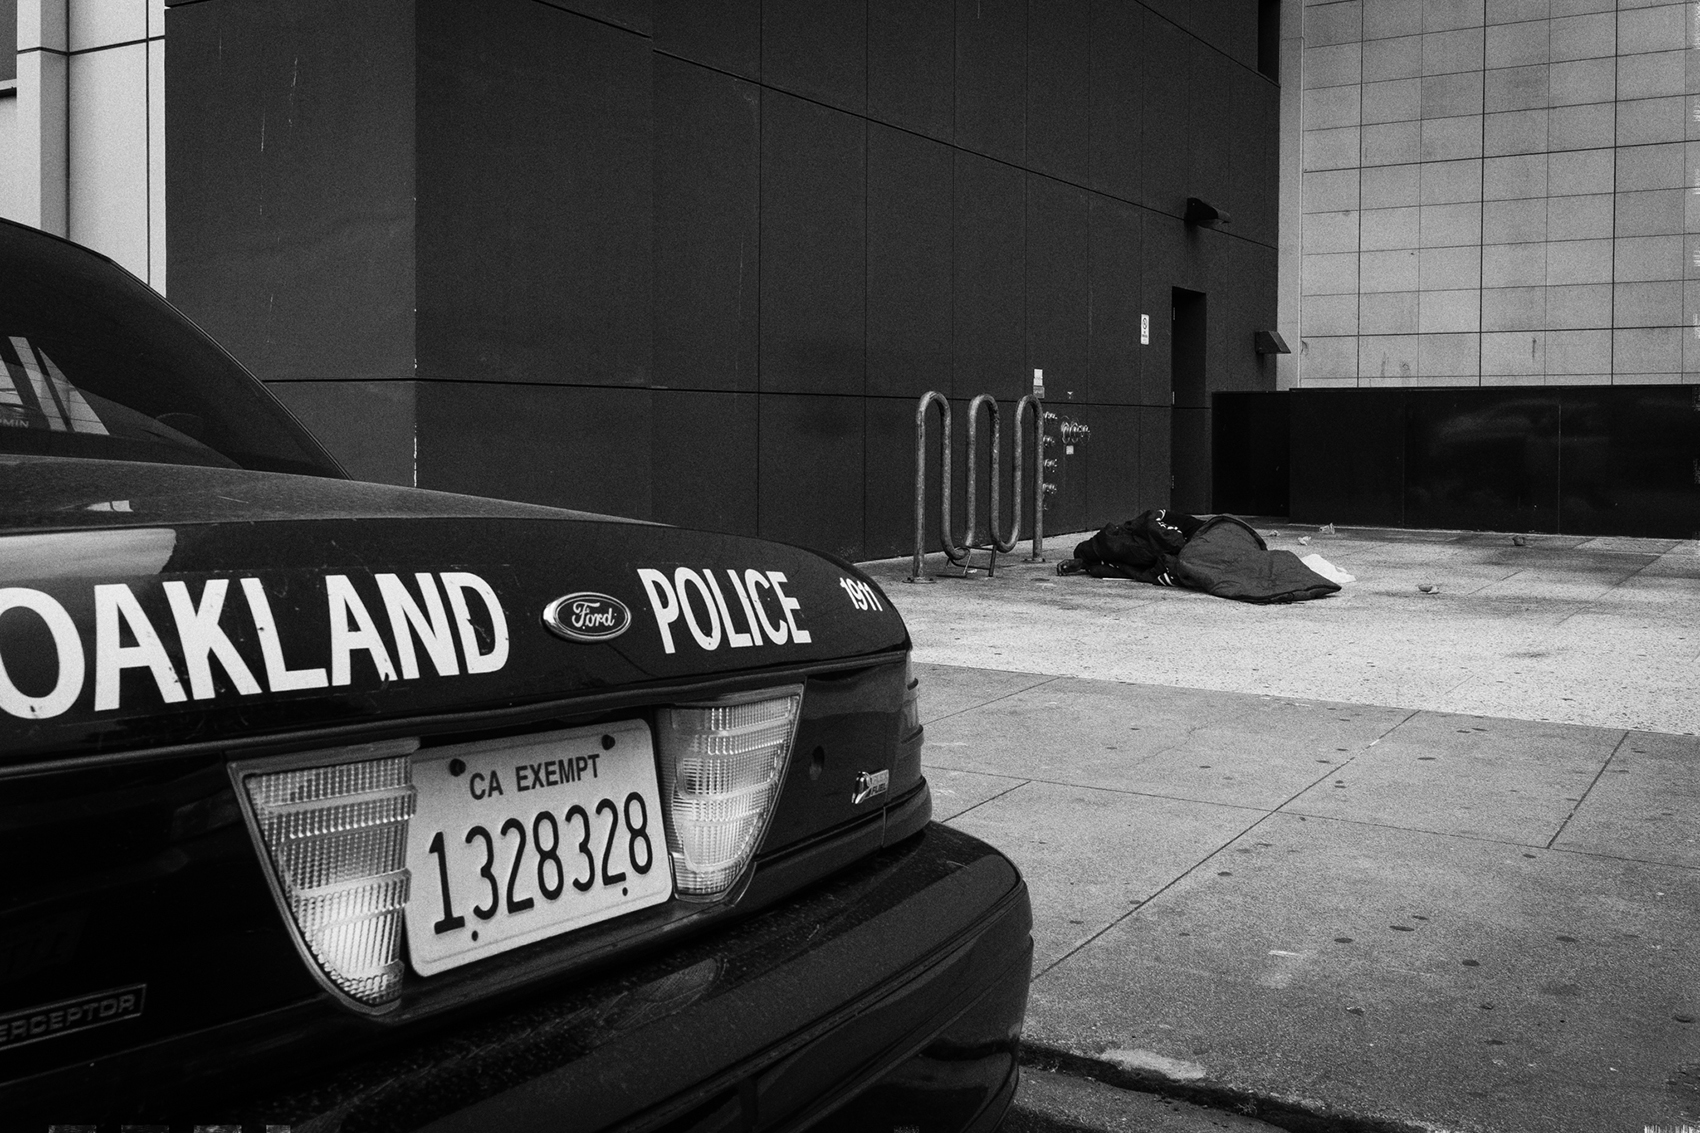 black and white photo of police car in foreground with homeless person sleeping on concrete in background